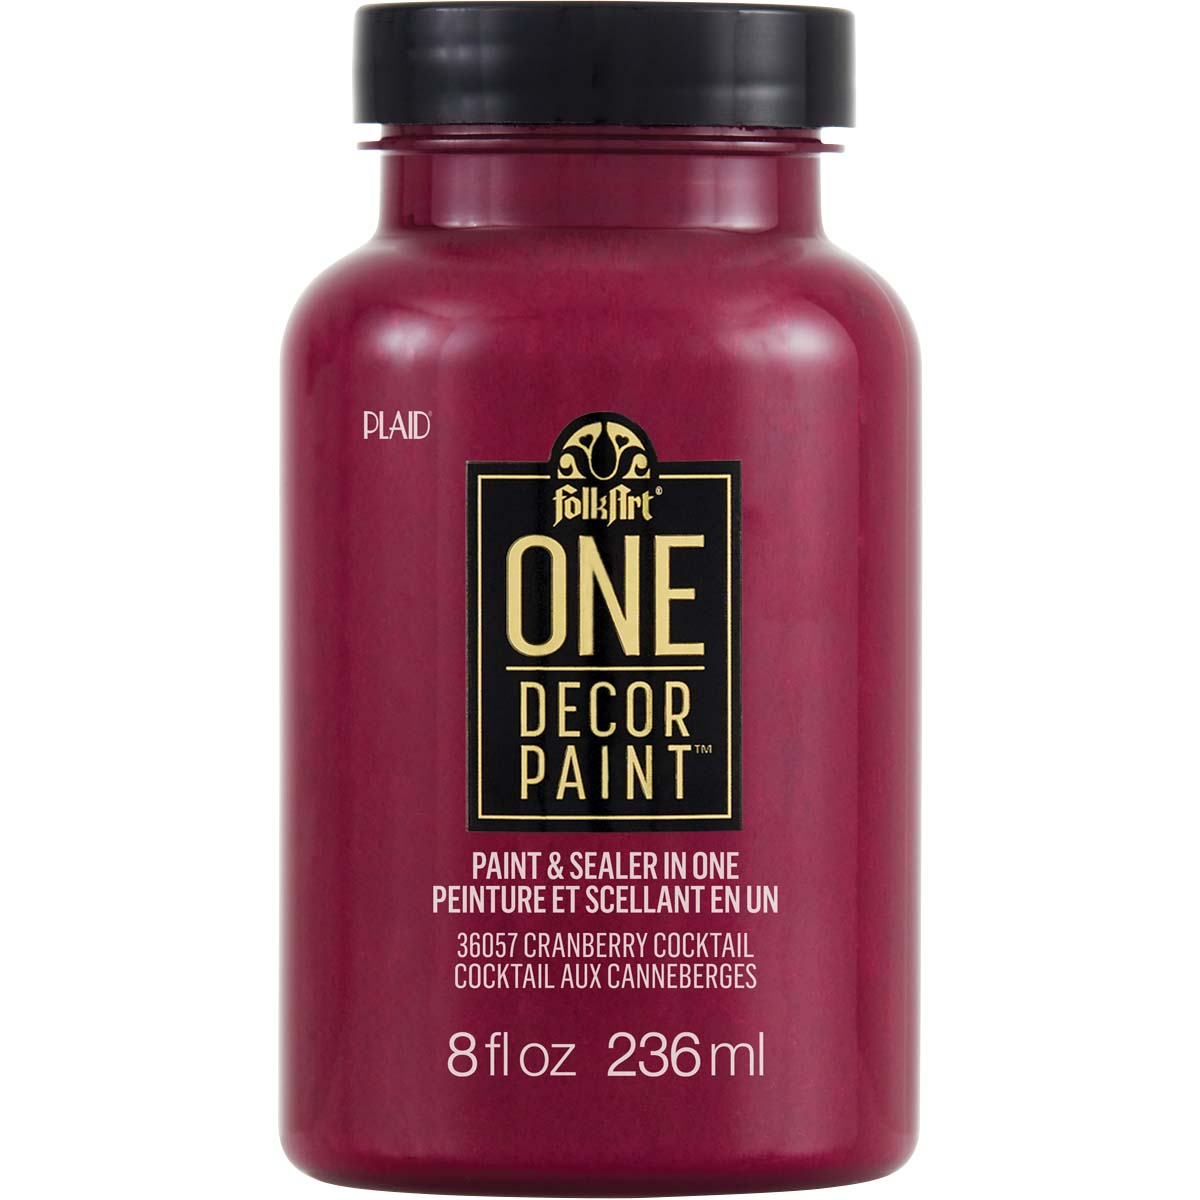 FolkArt ® One Décor Paint™ - Cranberry Cocktail, 8 oz. - 36057